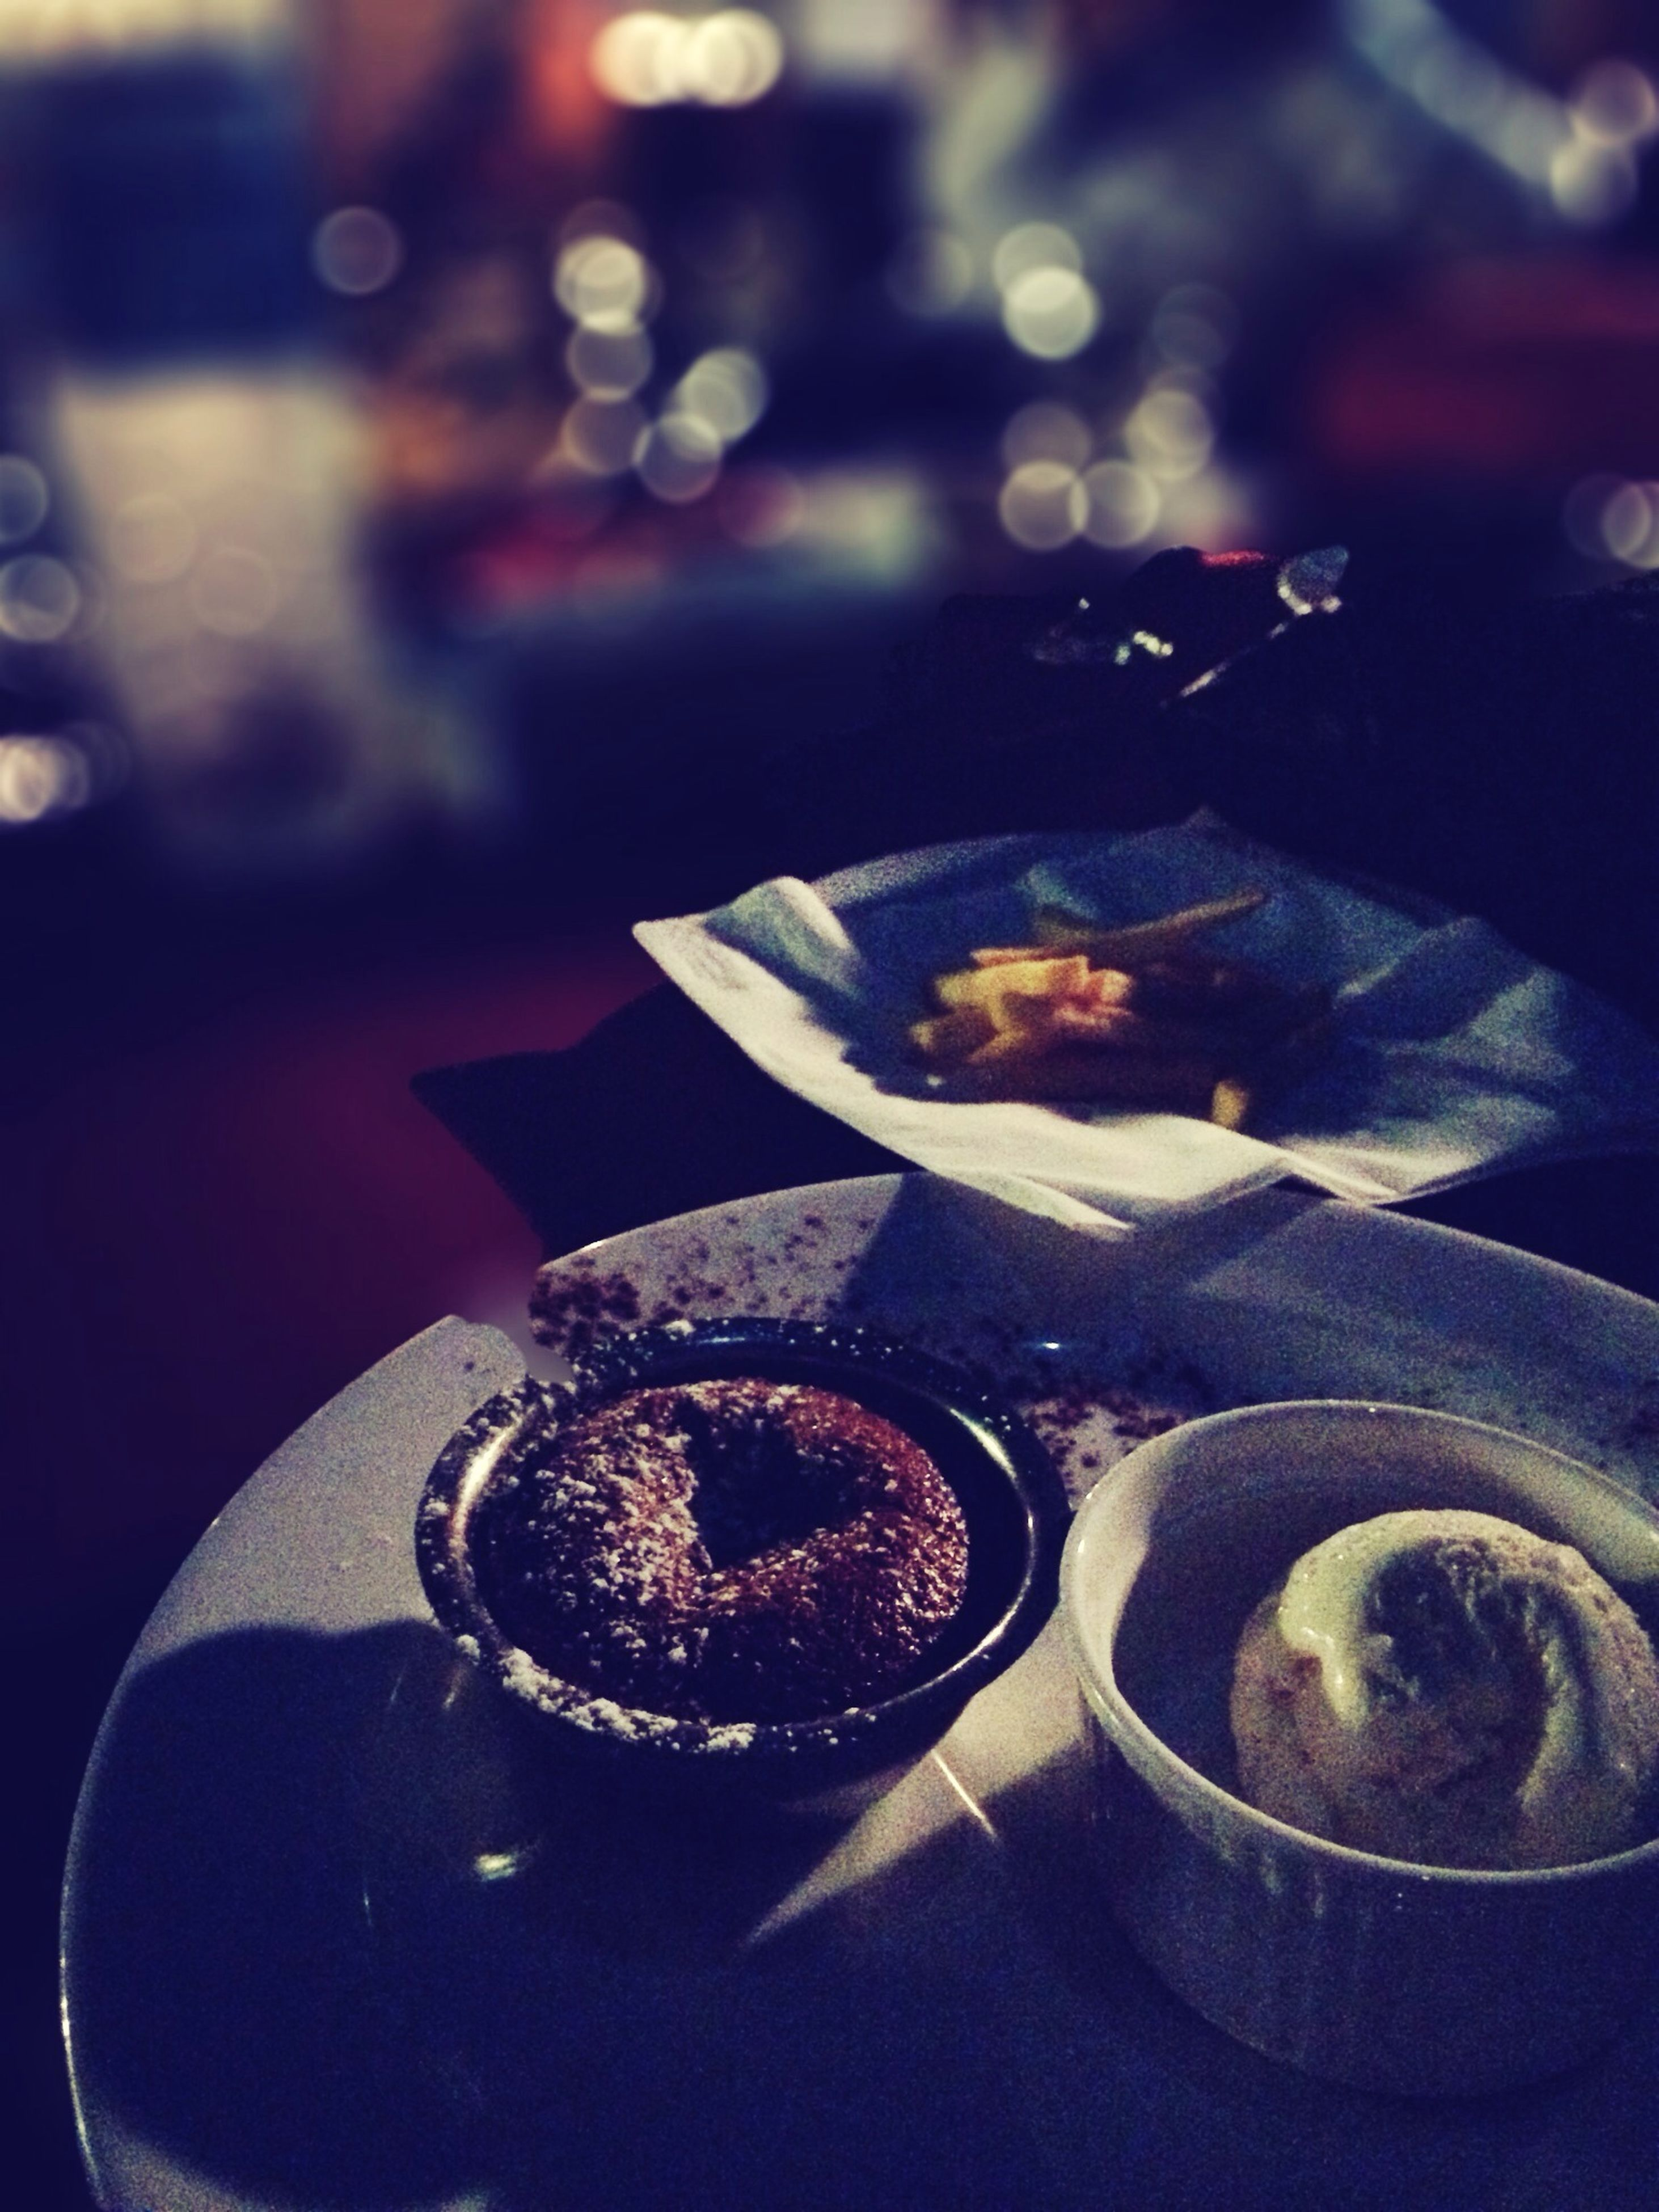 close-up, indoors, sweet food, focus on foreground, food and drink, still life, freshness, selective focus, dessert, table, food, indulgence, unhealthy eating, cake, ready-to-eat, no people, high angle view, chocolate, temptation, plate